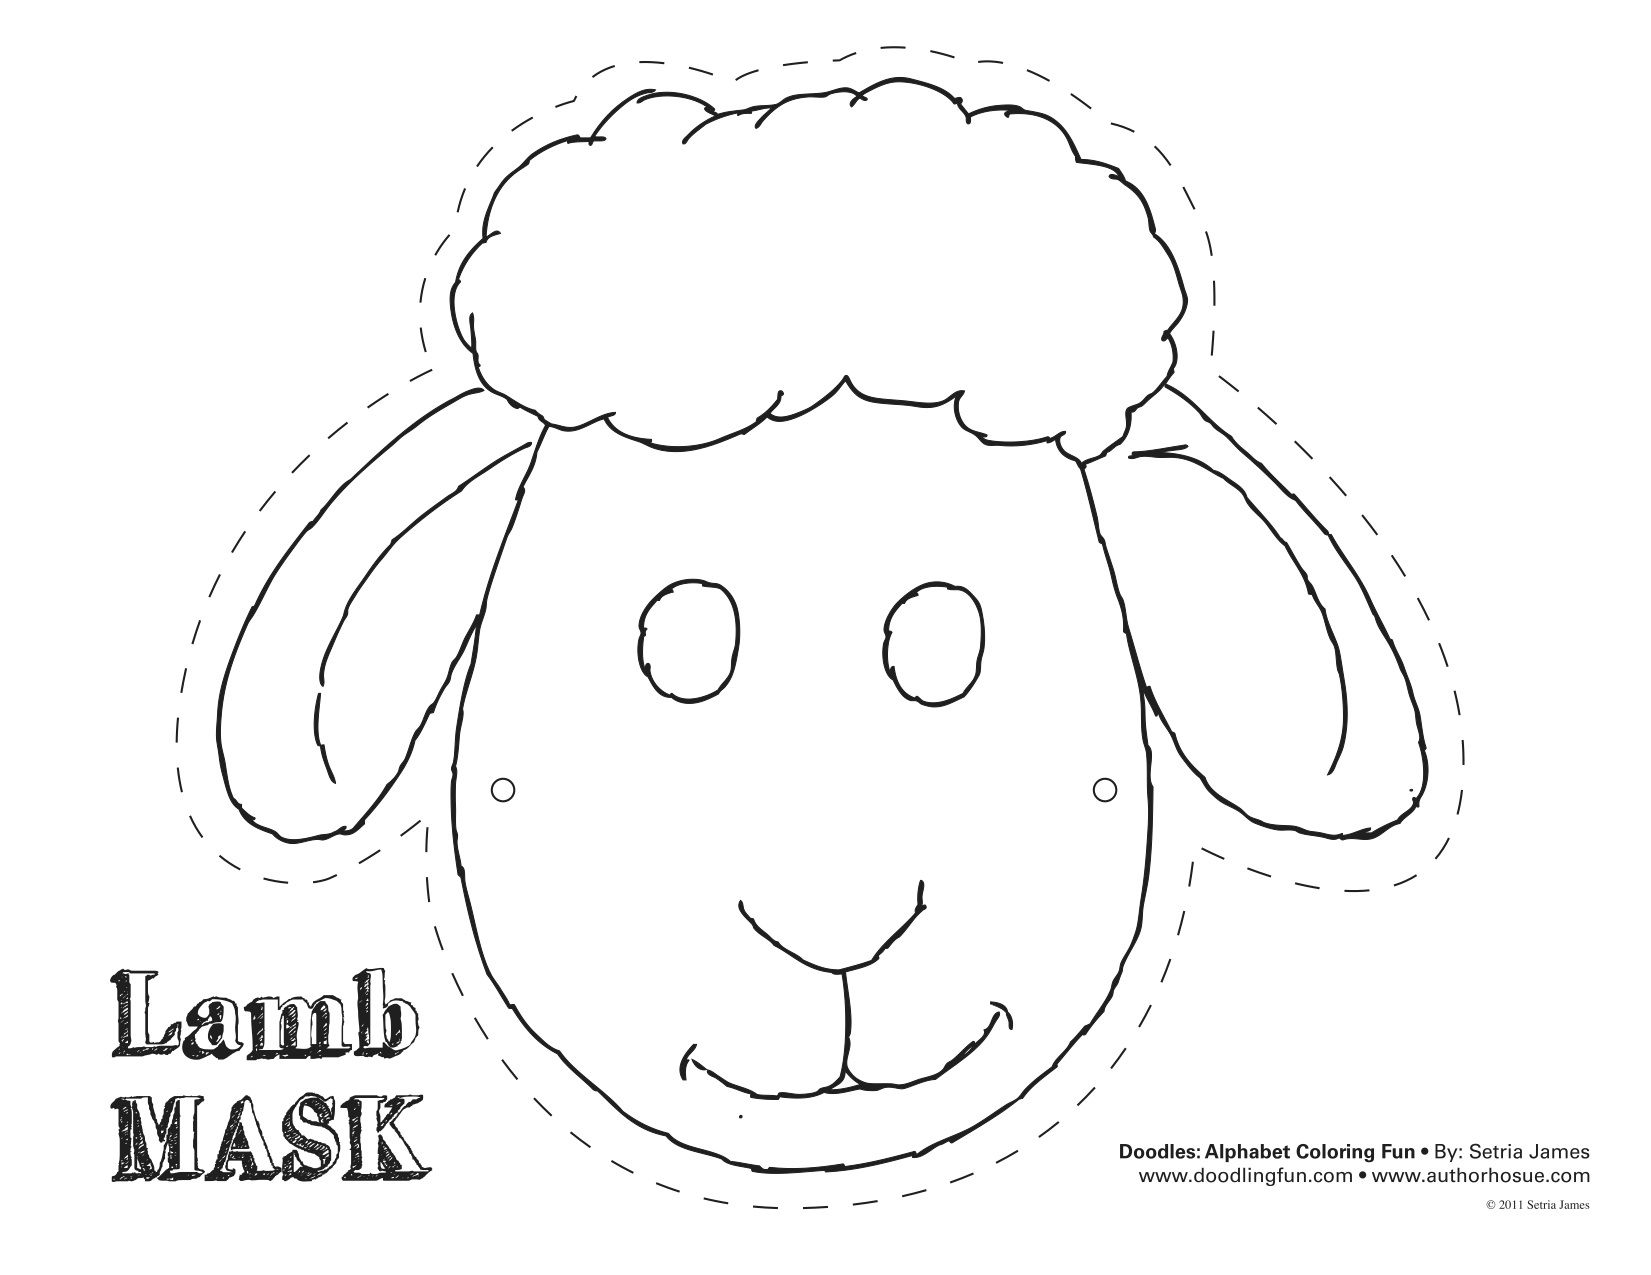 Lamb mask theatrics kiddos play craft coloring for Dog mask template for kids